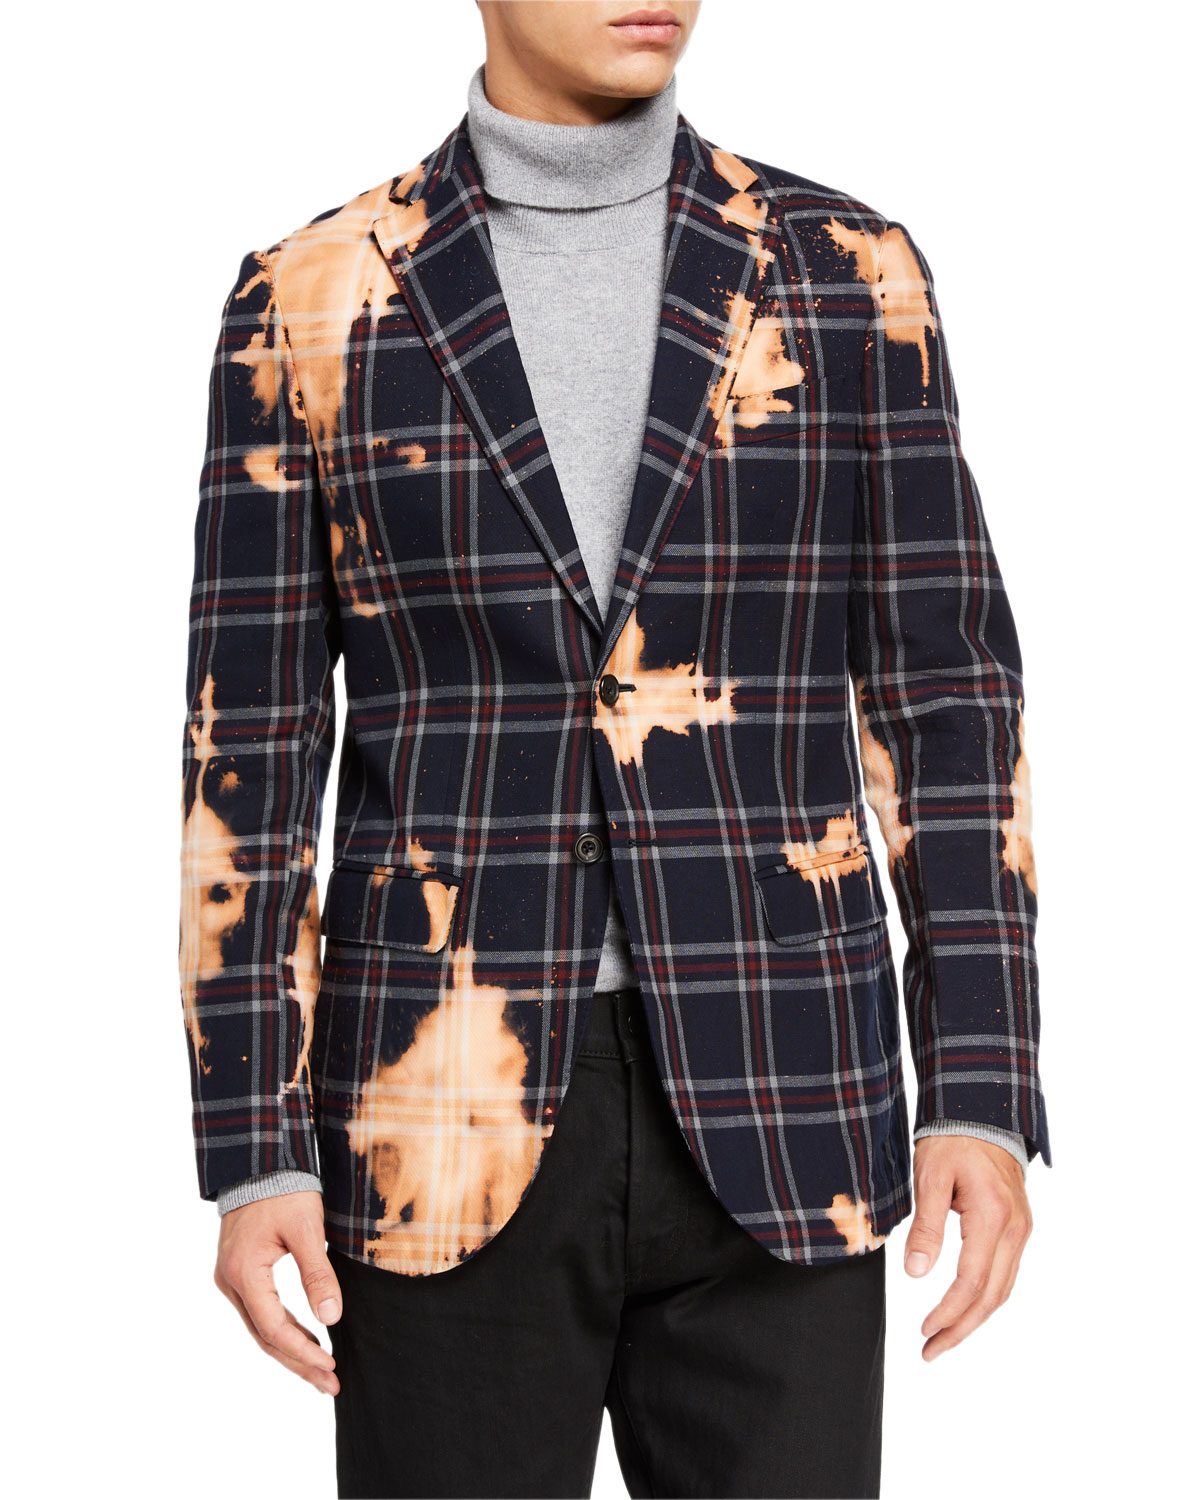 R13 Men's Distressed Tailored Two-Button Jacket